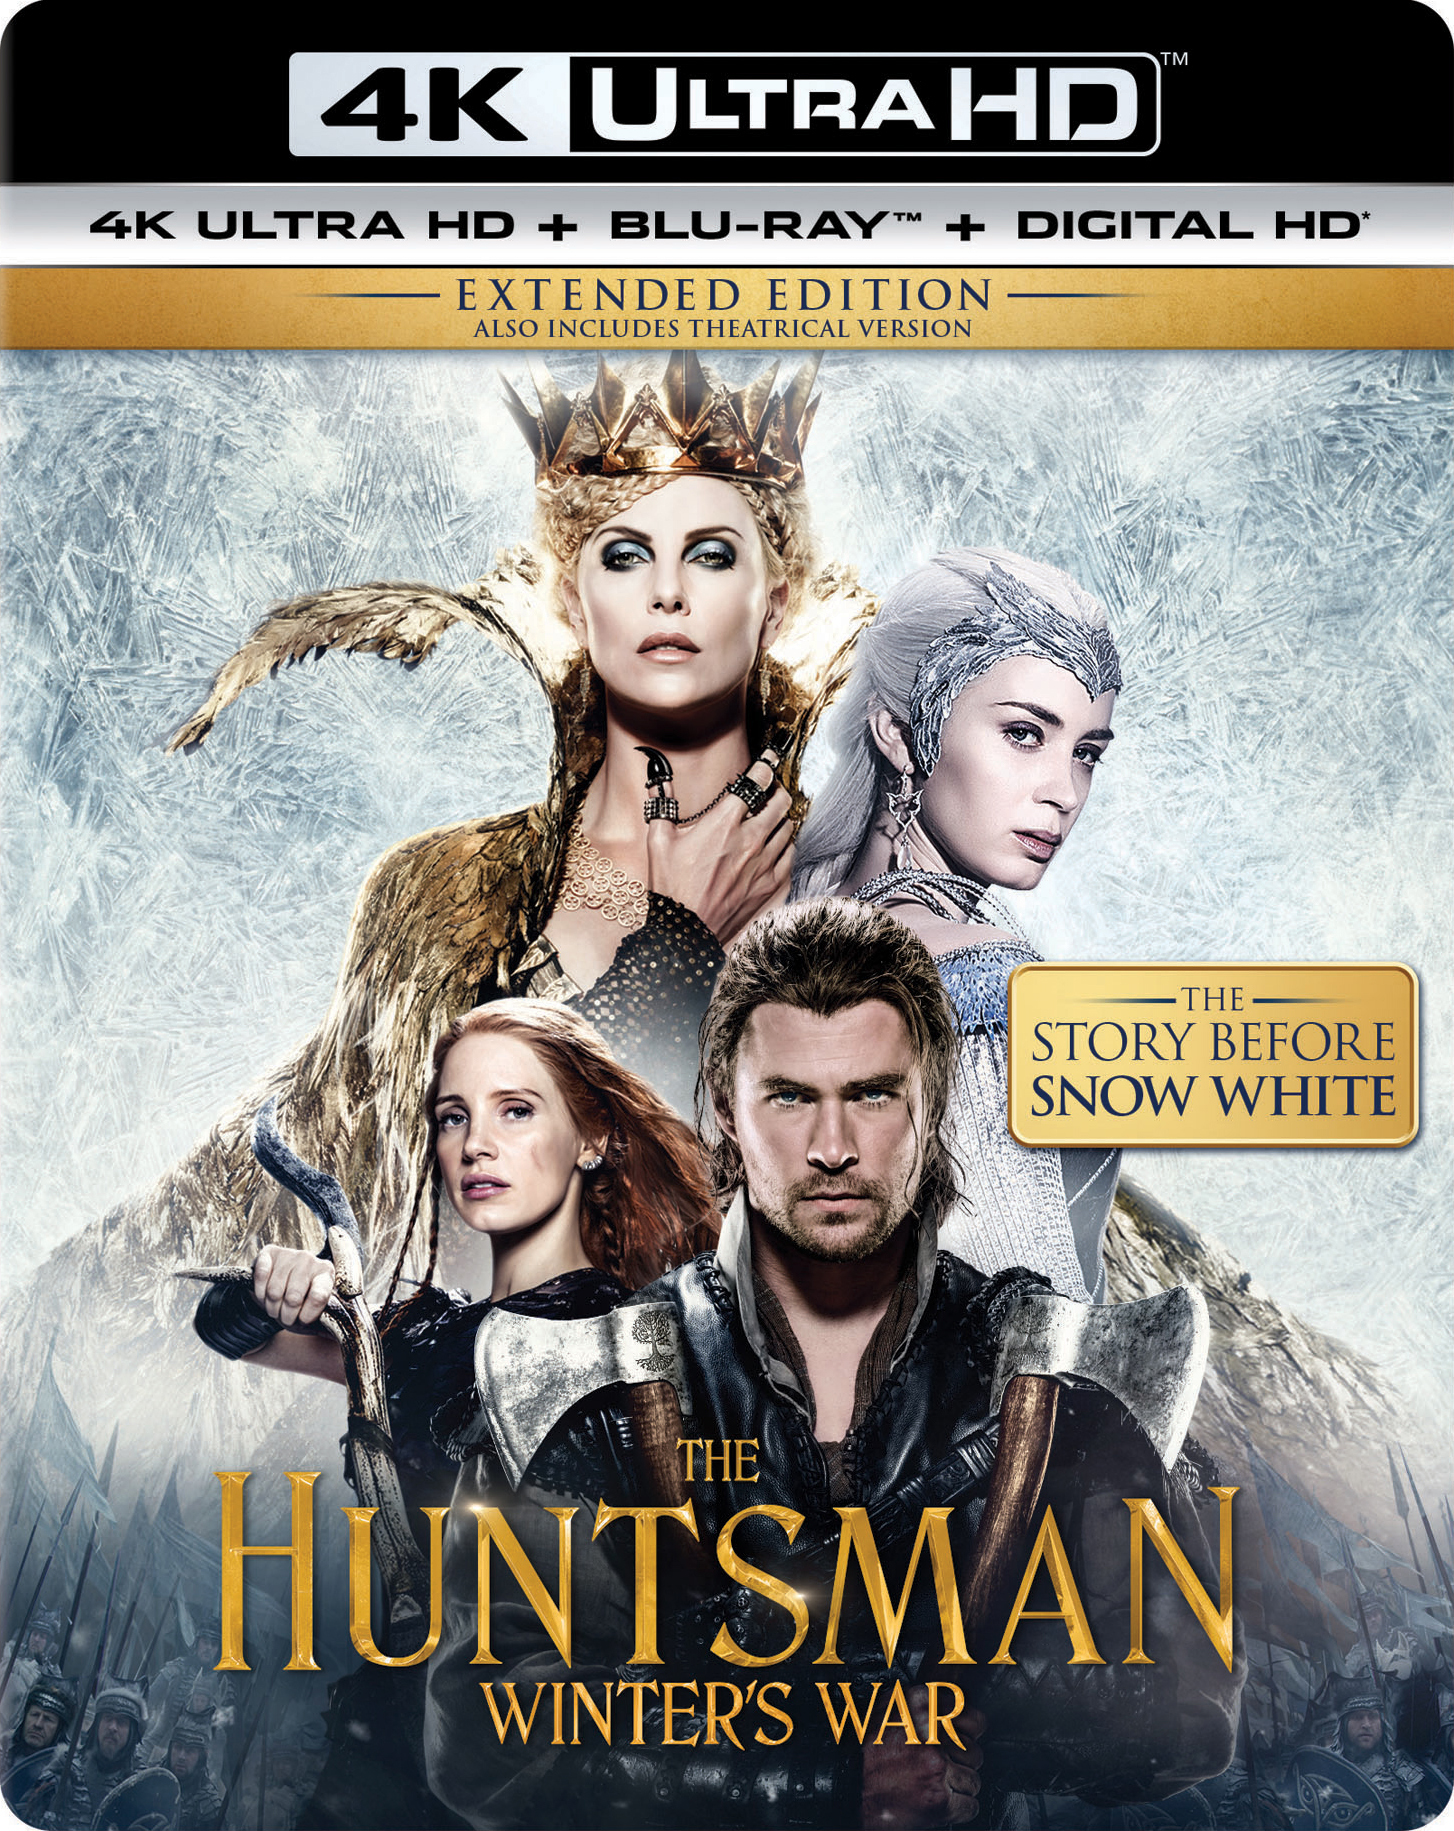 The Huntsman: Winters War (2016) 4K Ultra HD Blu-ray UHD